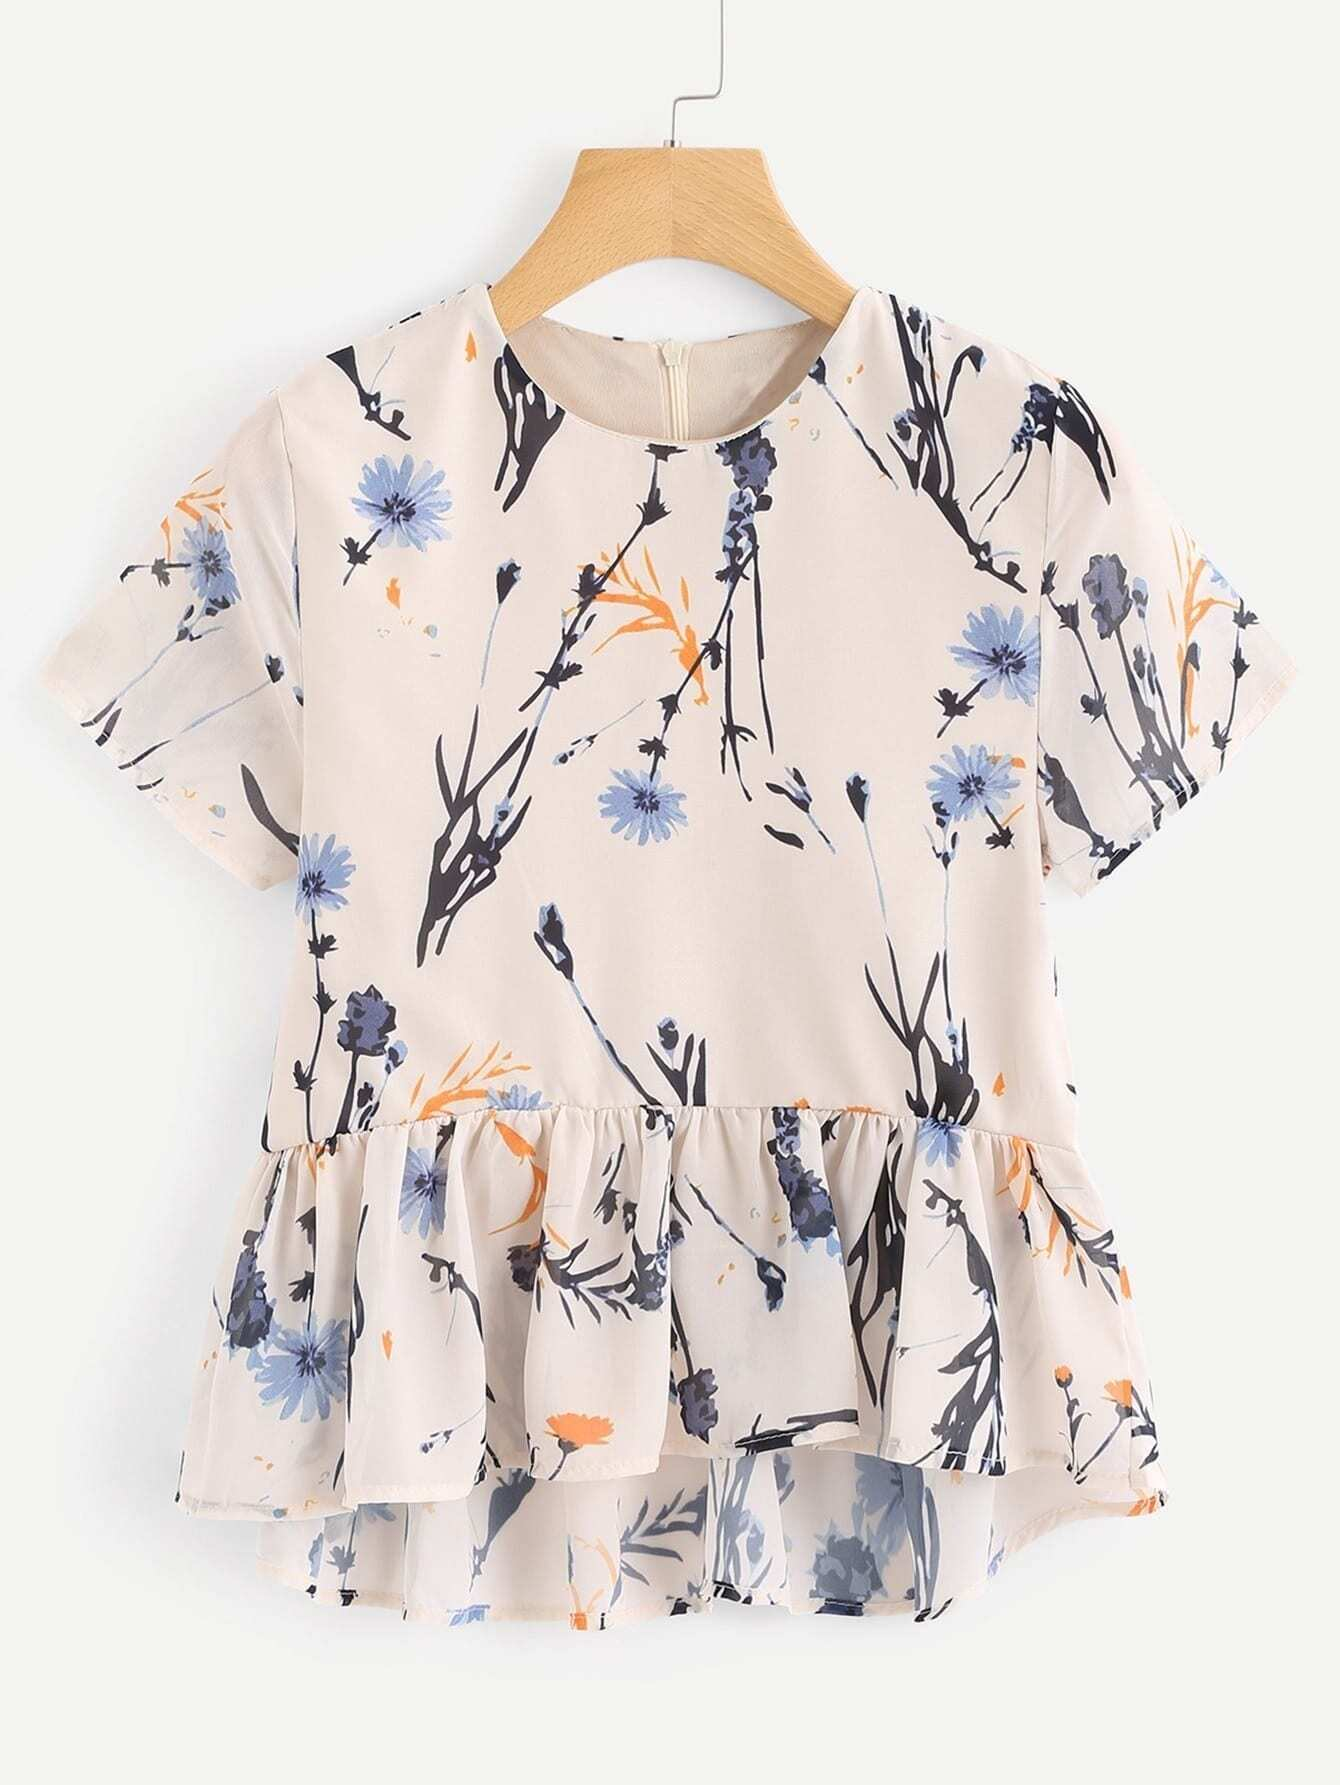 Botanical Print Ruffle Hem Blouse original romoss sense4 dual usb 10400mah power bank